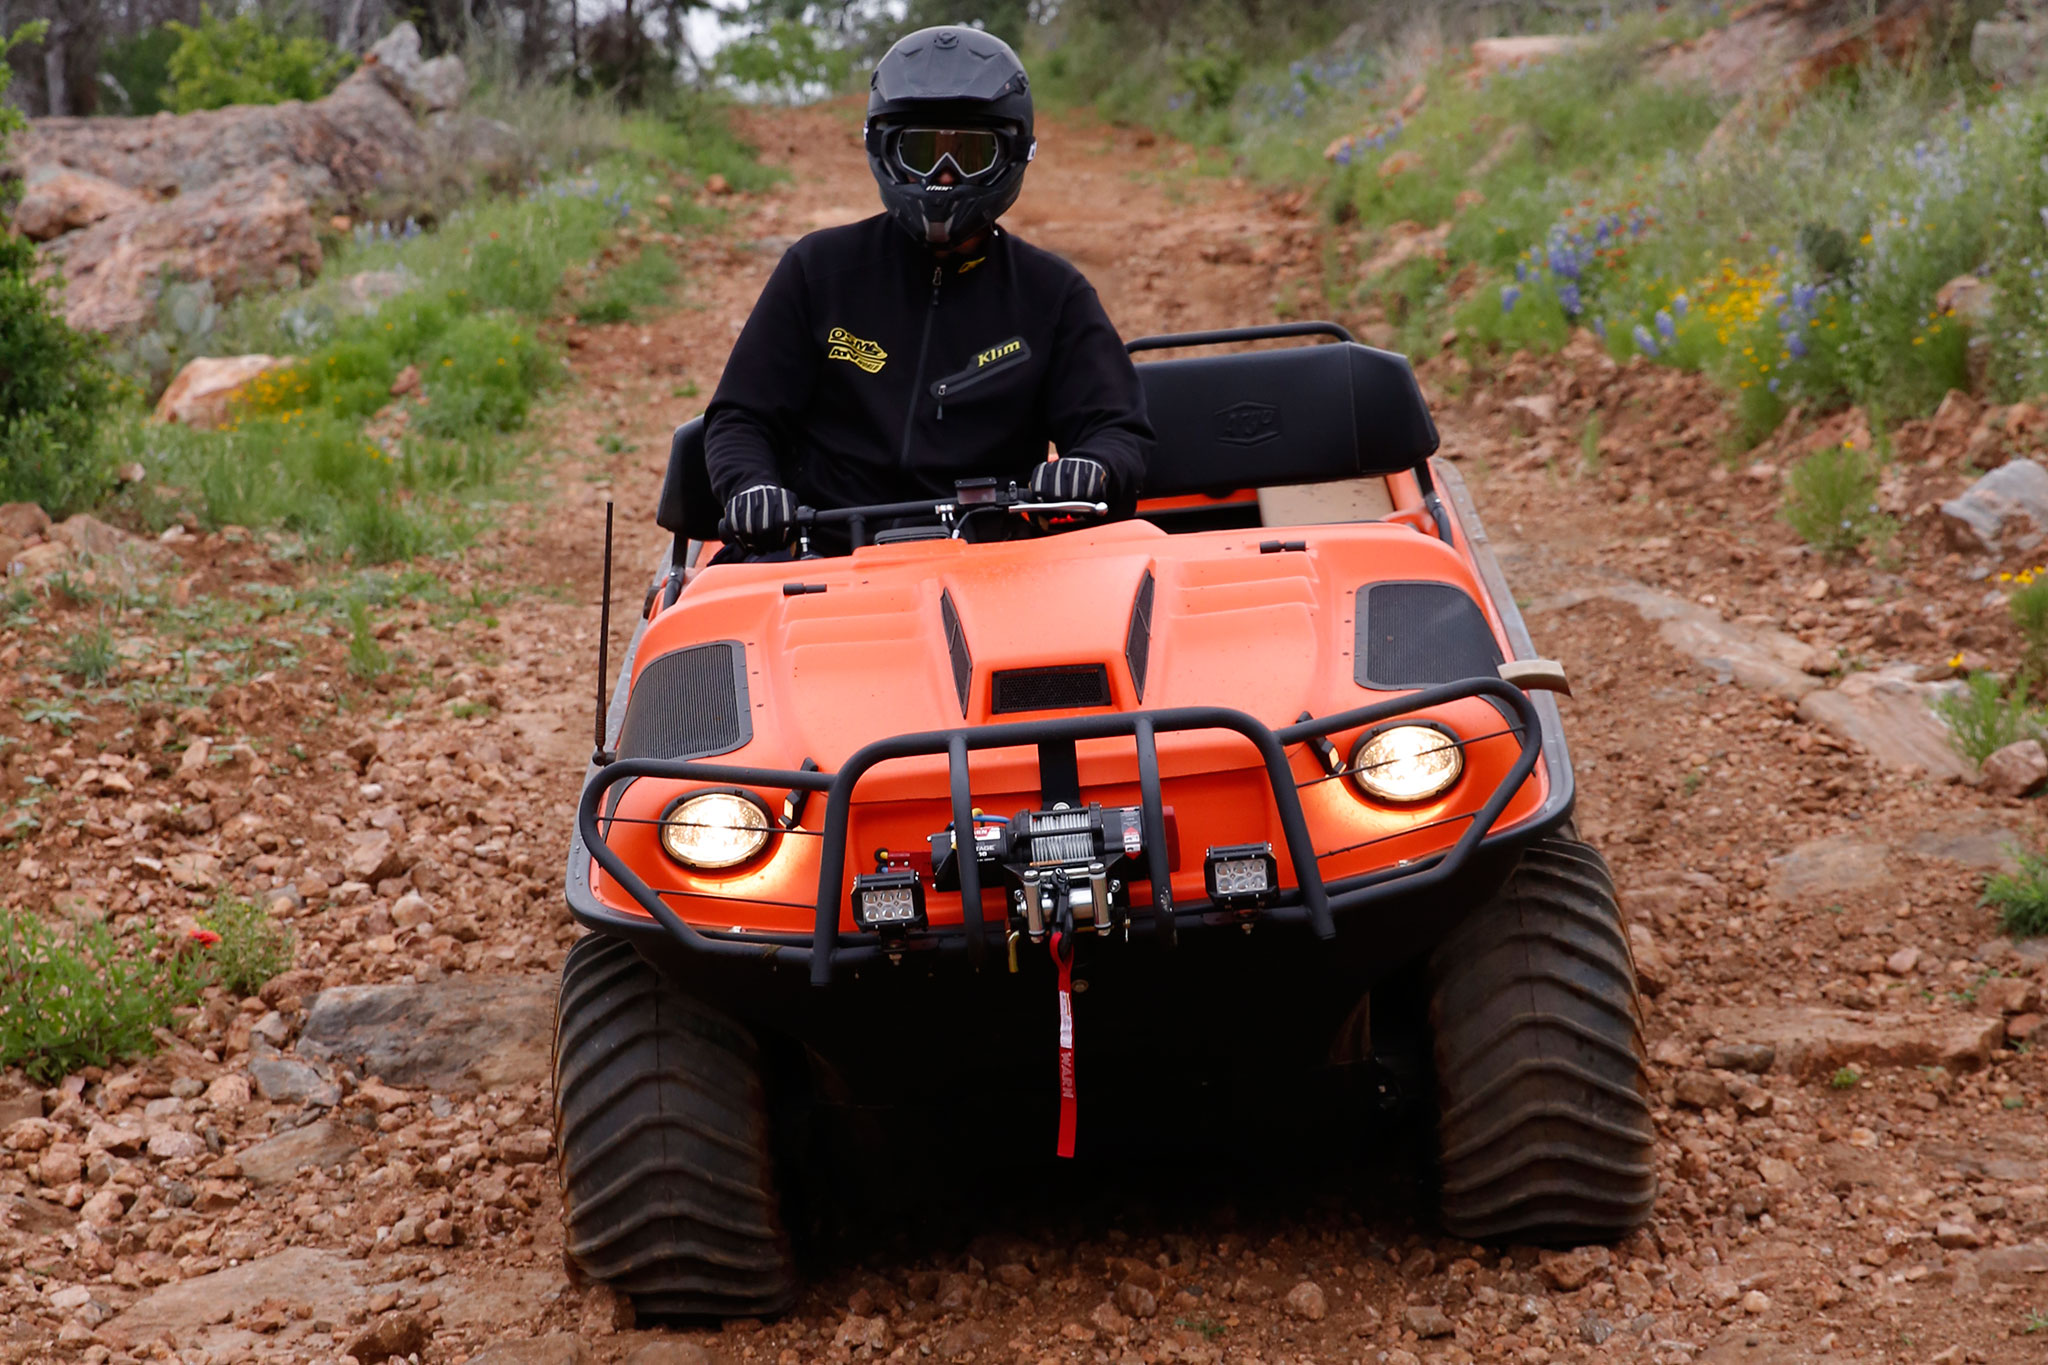 review for argo Argo is targeting the much sought after recreational rider with its plush new lx series, which offers much improved comfort compared to argos of yesteryear.